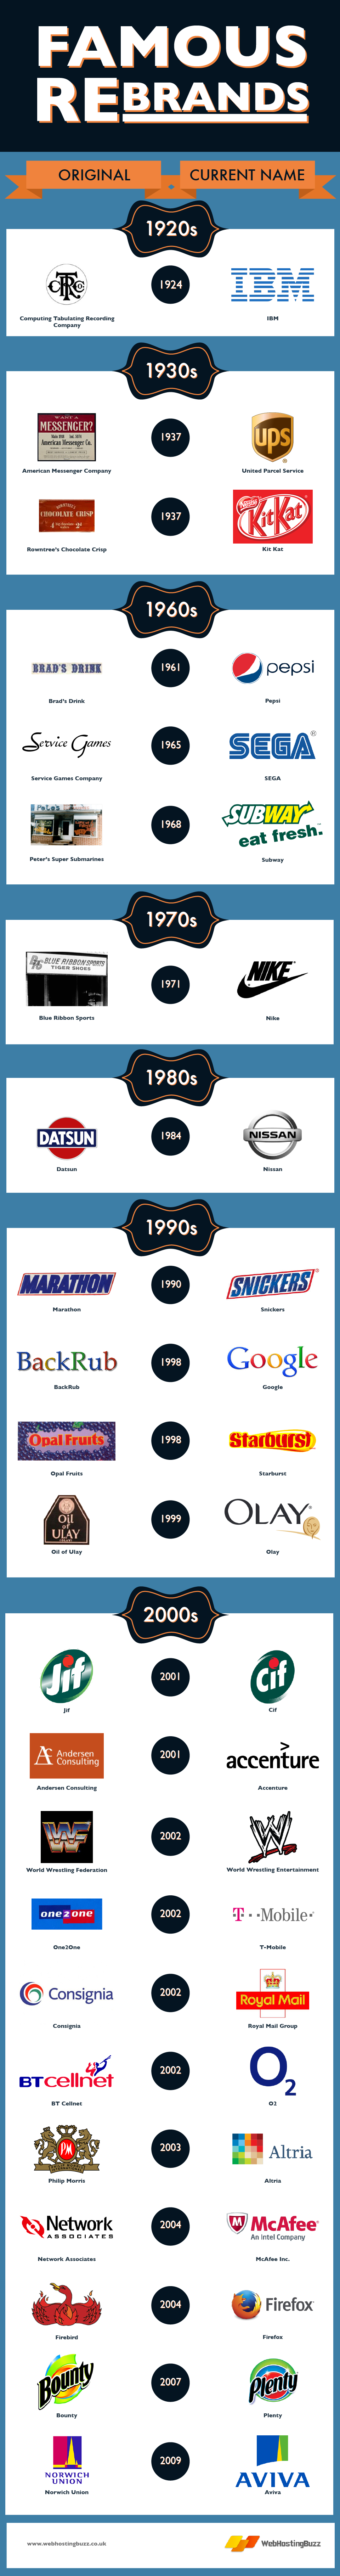 Most famous rebrands infographic